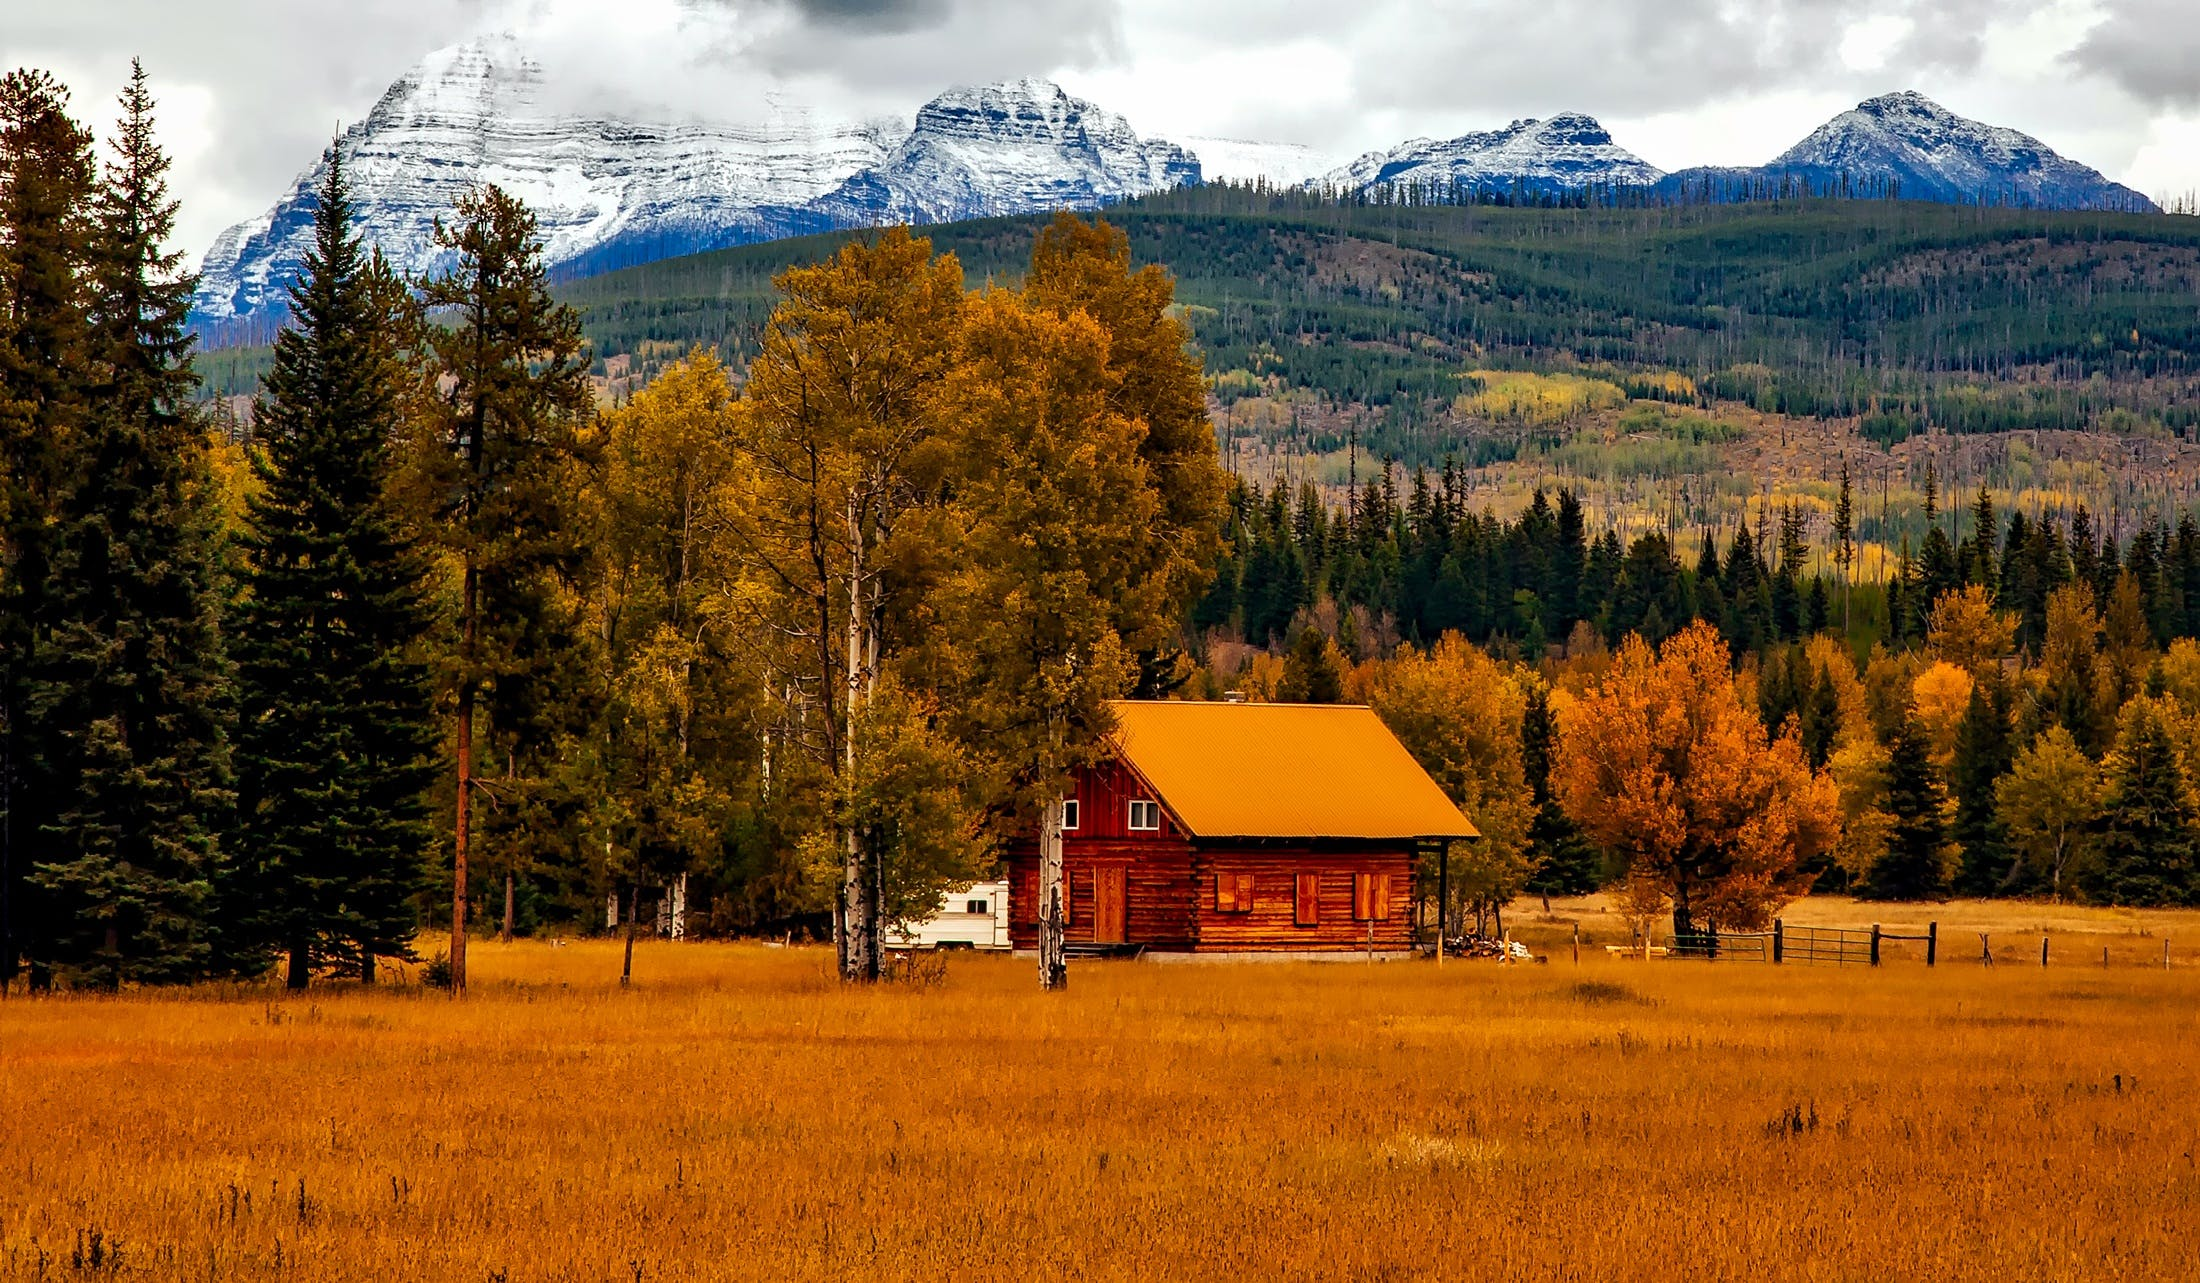 autumn, barn, colorado